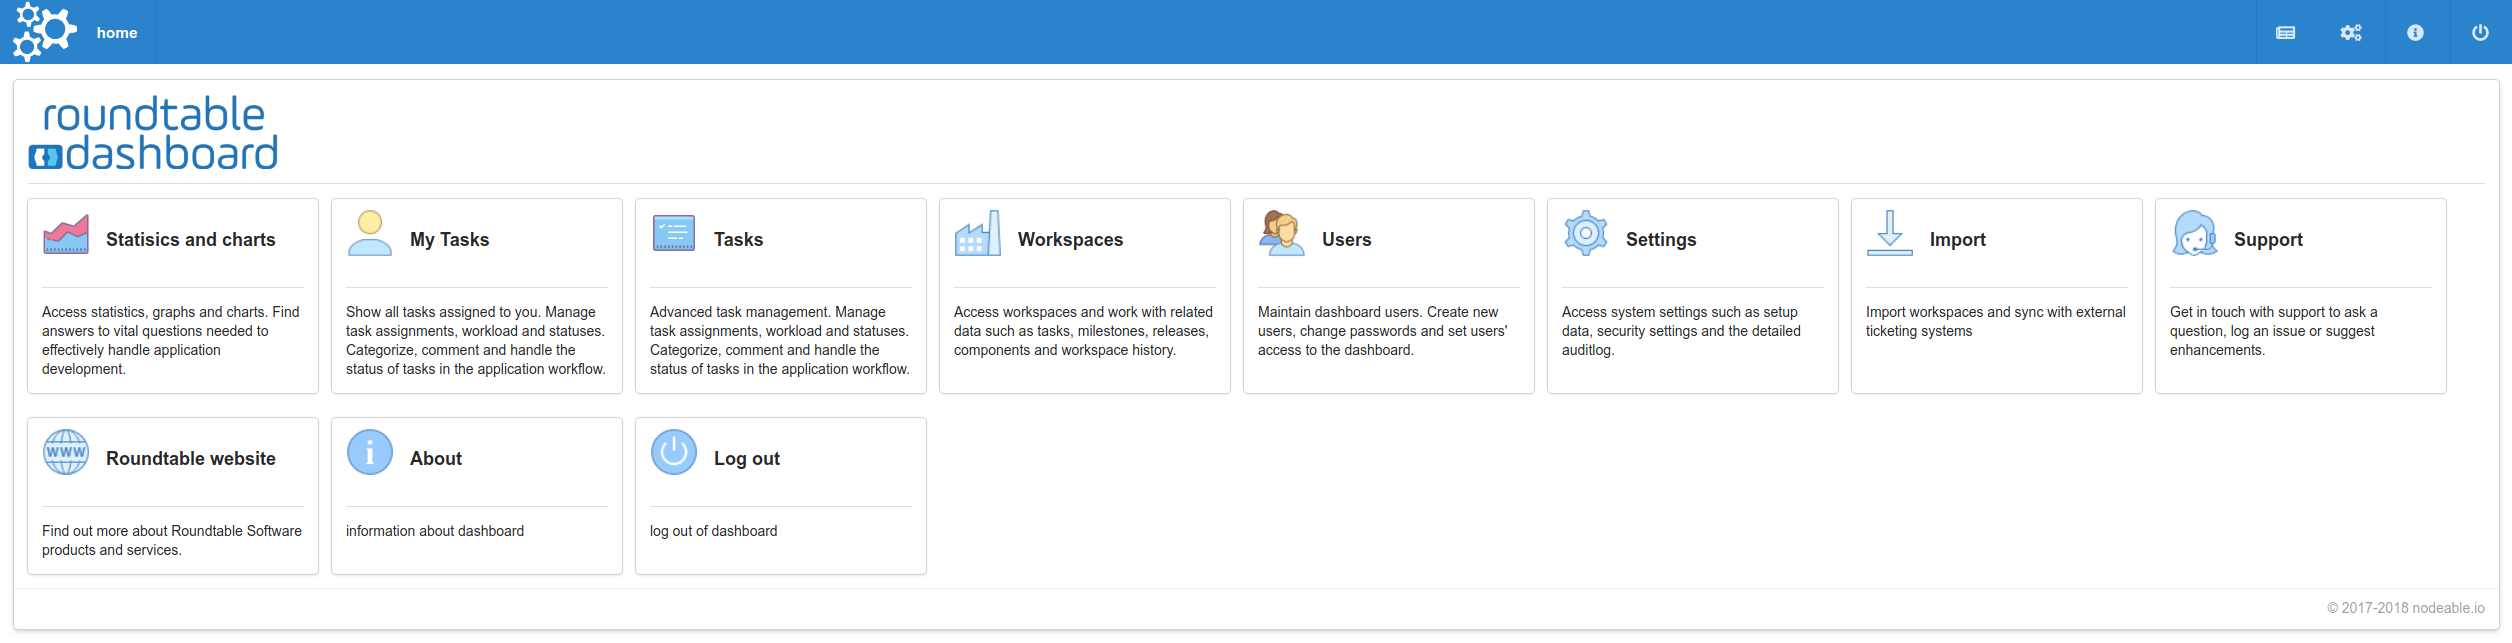 Roundtable Dashboard Screenshot